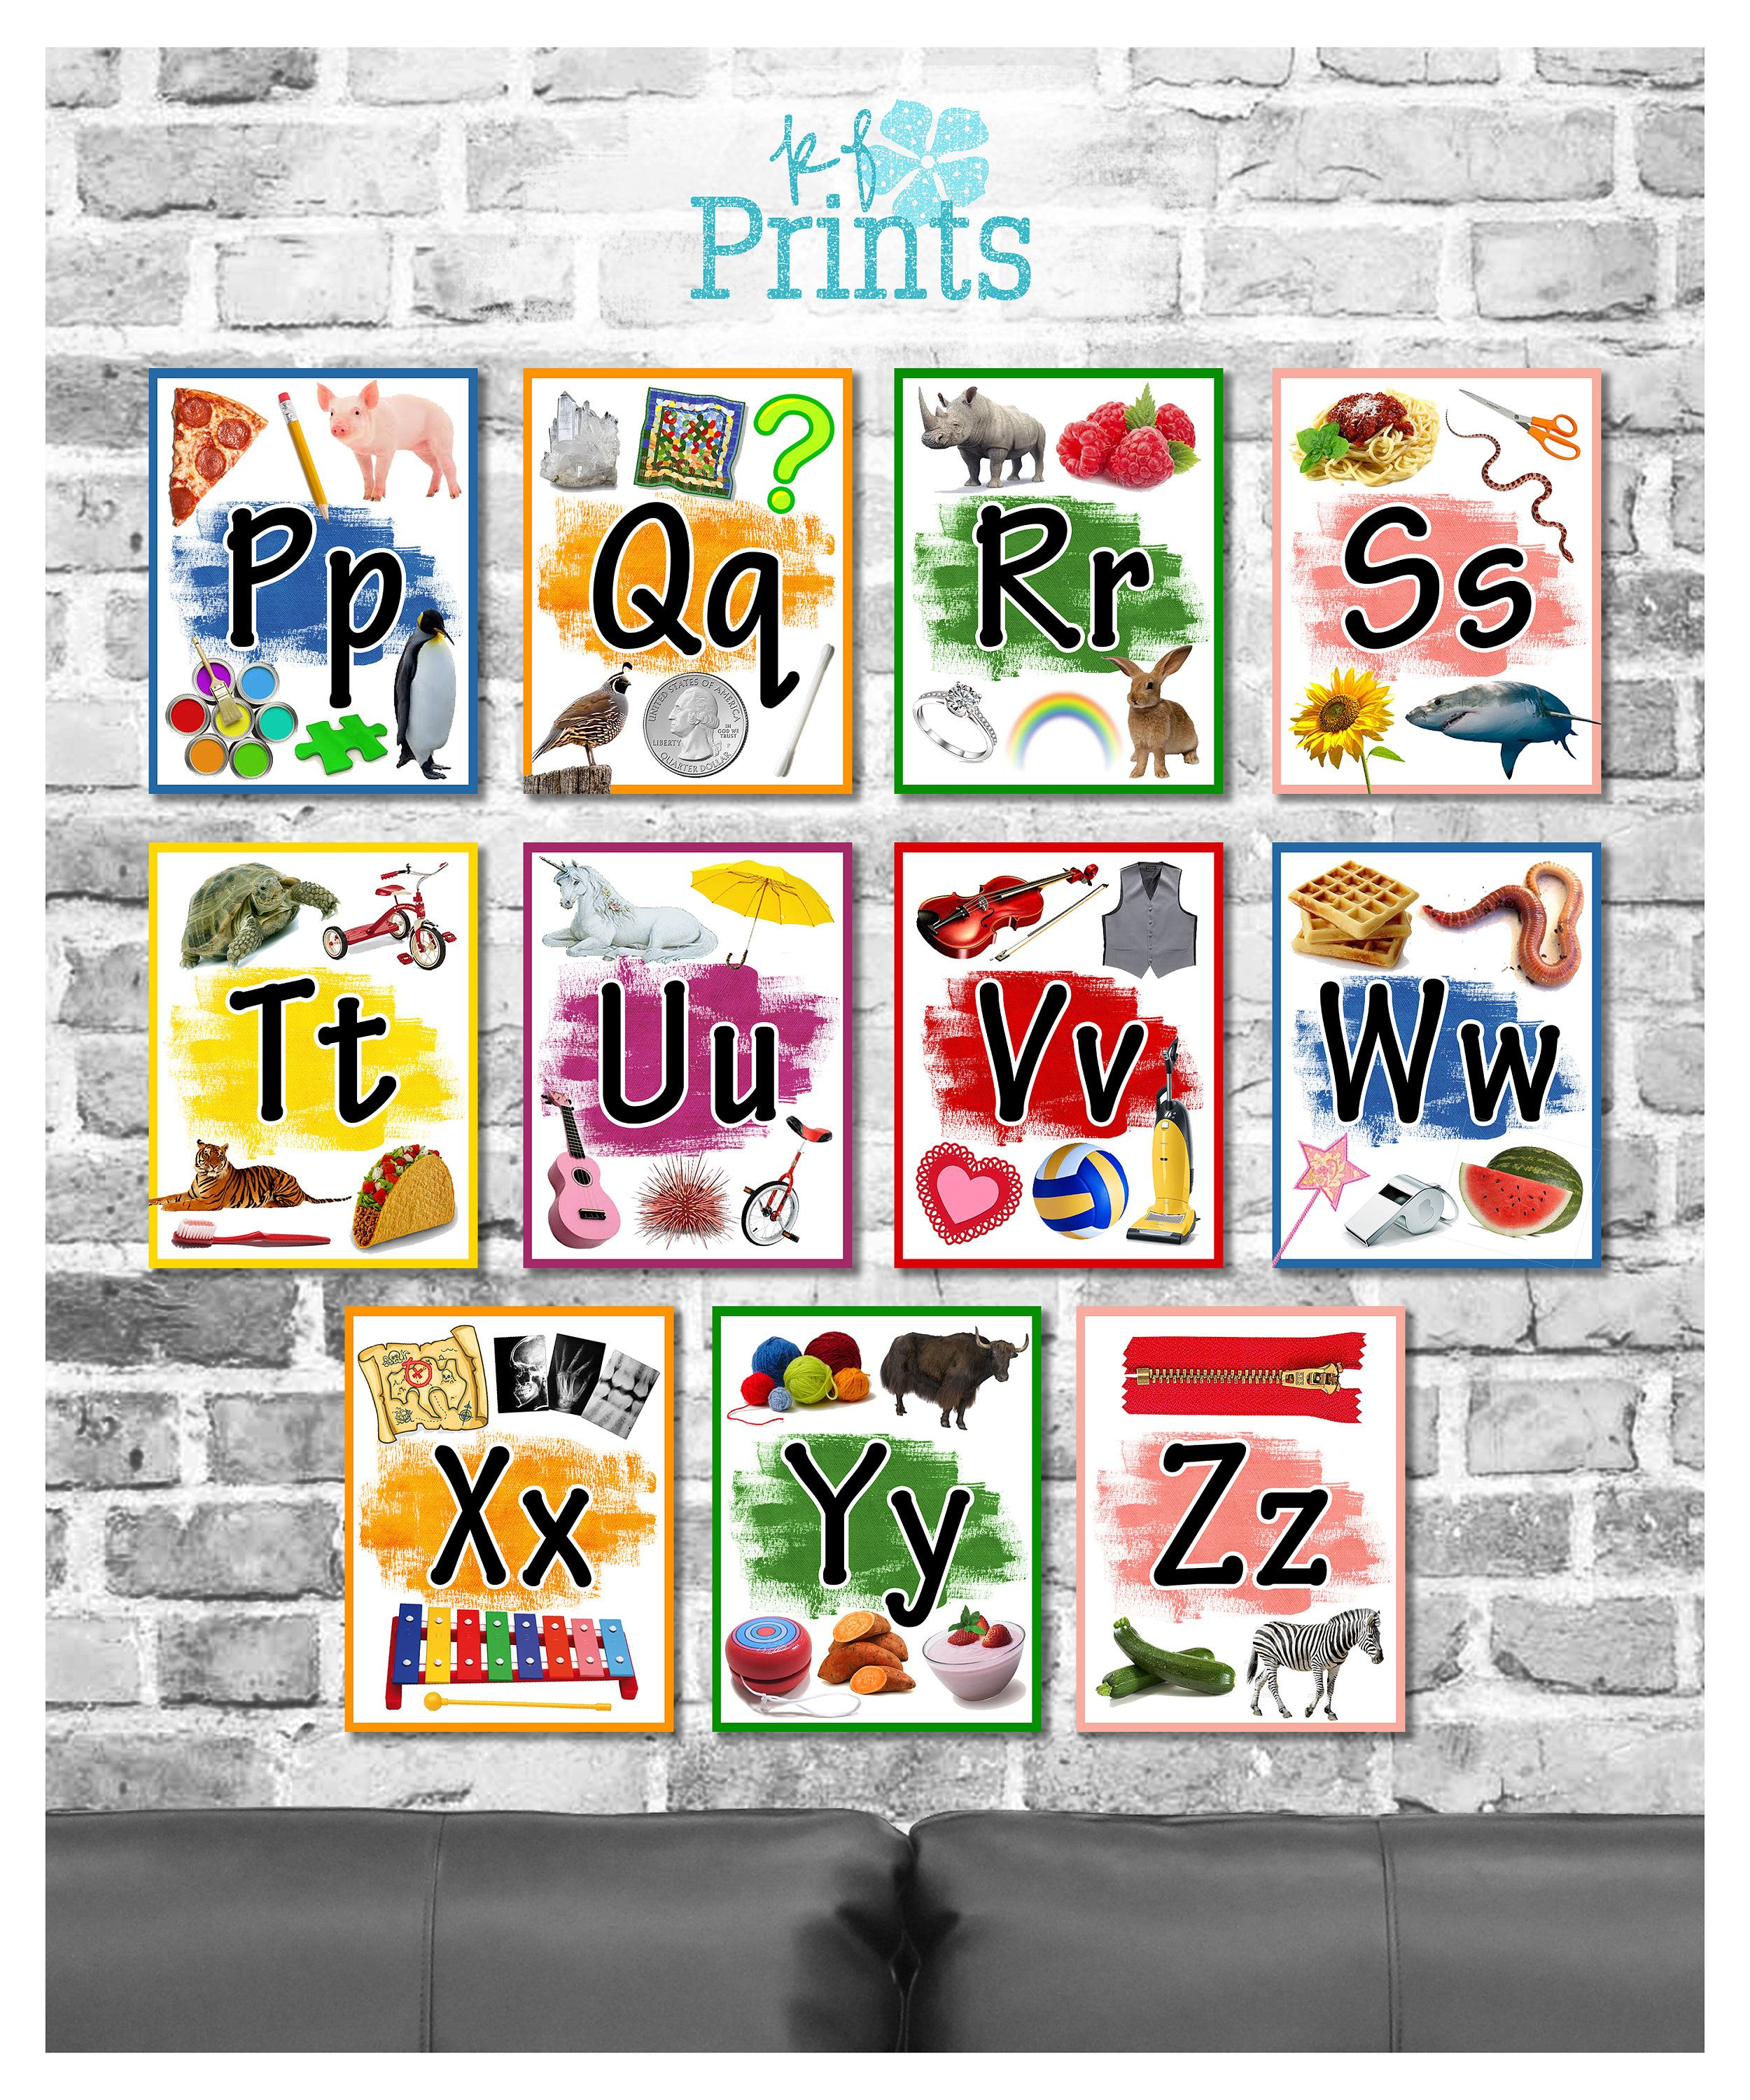 asli letters band aetherair names gifts letter name alphabet co bands bandphoto mats